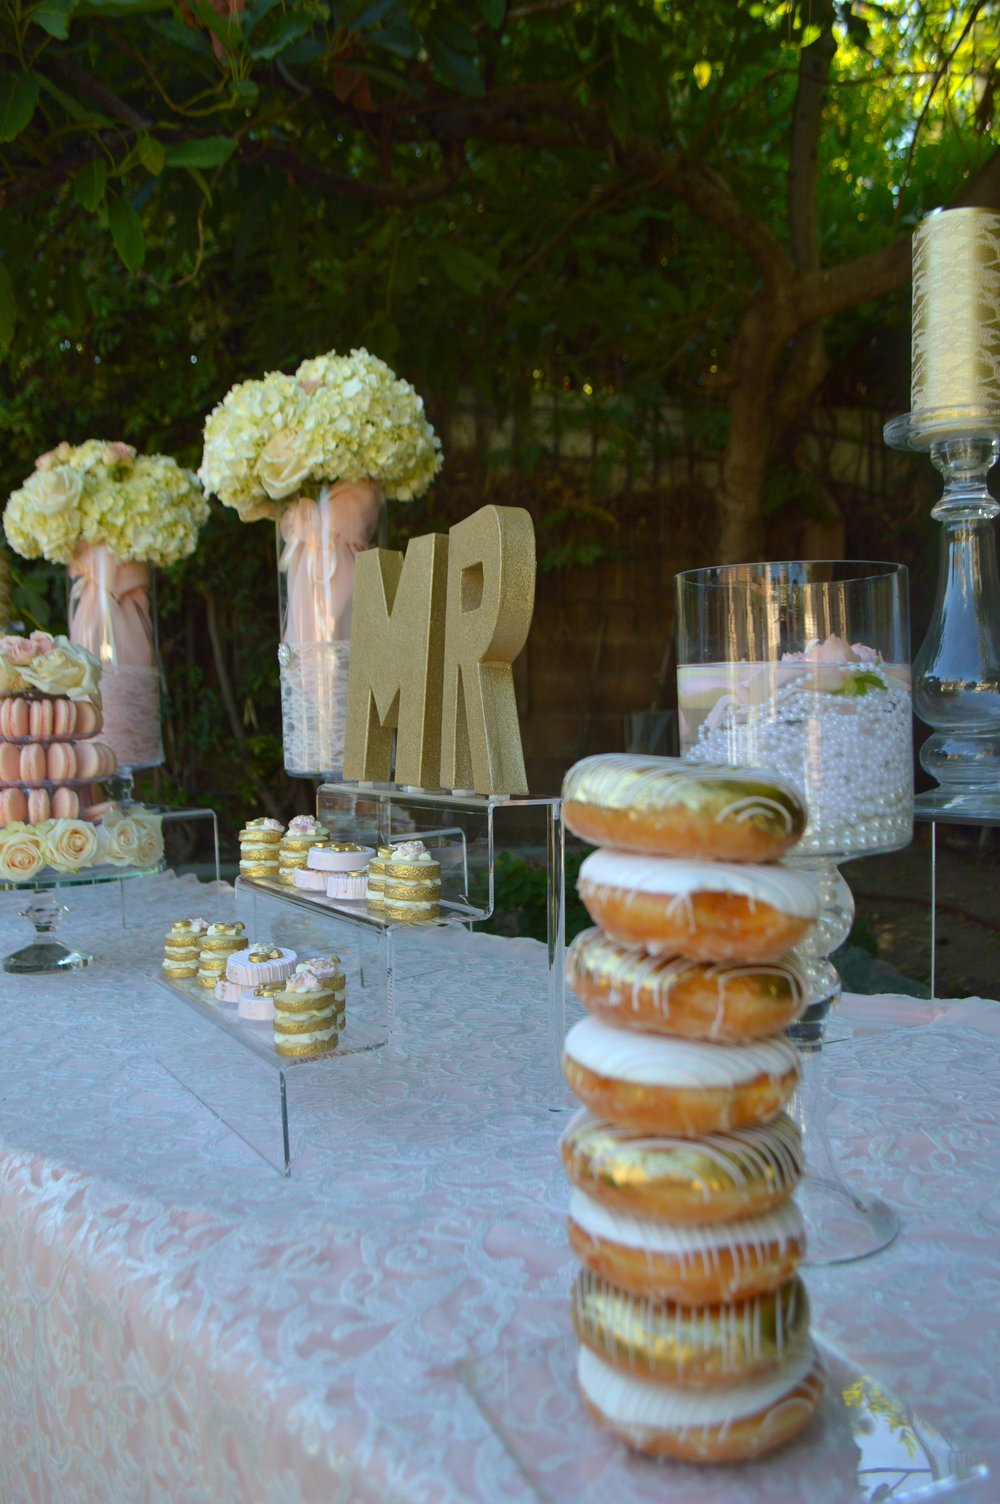 Wedding Dessert Table-wedding ideas-wedding desserts-wedding-lace table cloth-wedding ideas-garden wedding-www.SugarPartiesLA.com.jpg